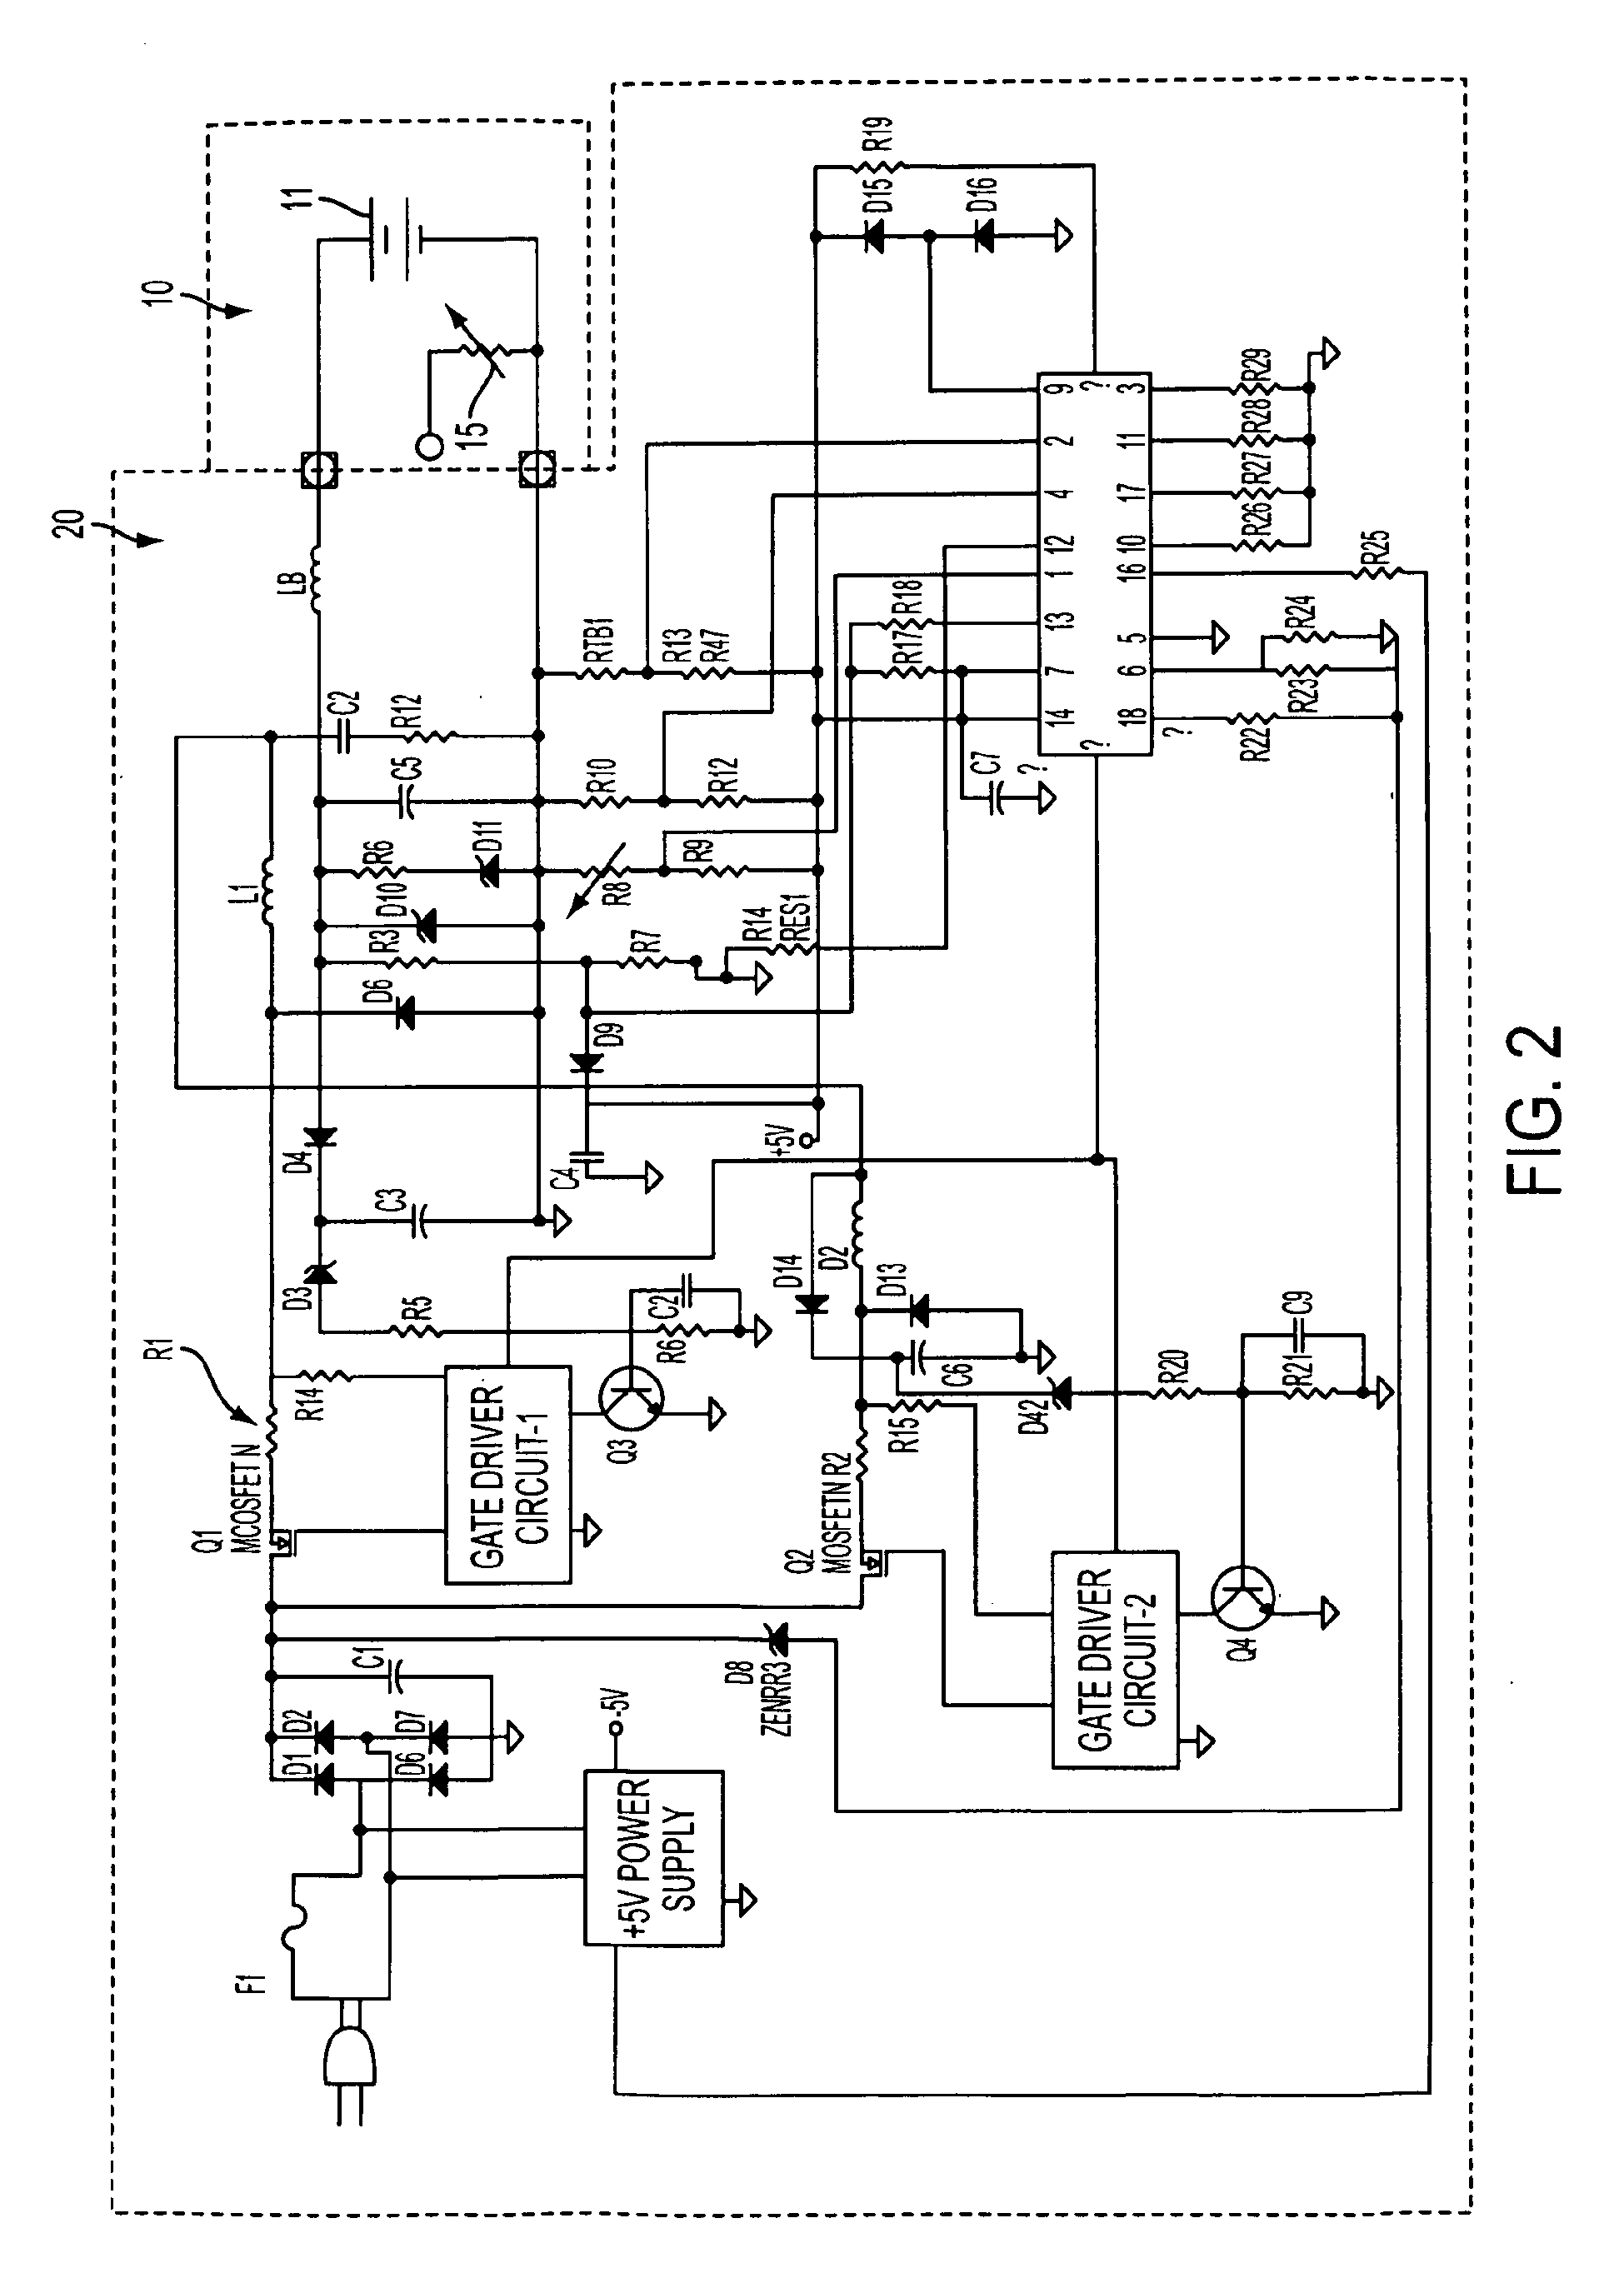 battery charger wiring schematic battery charger parts